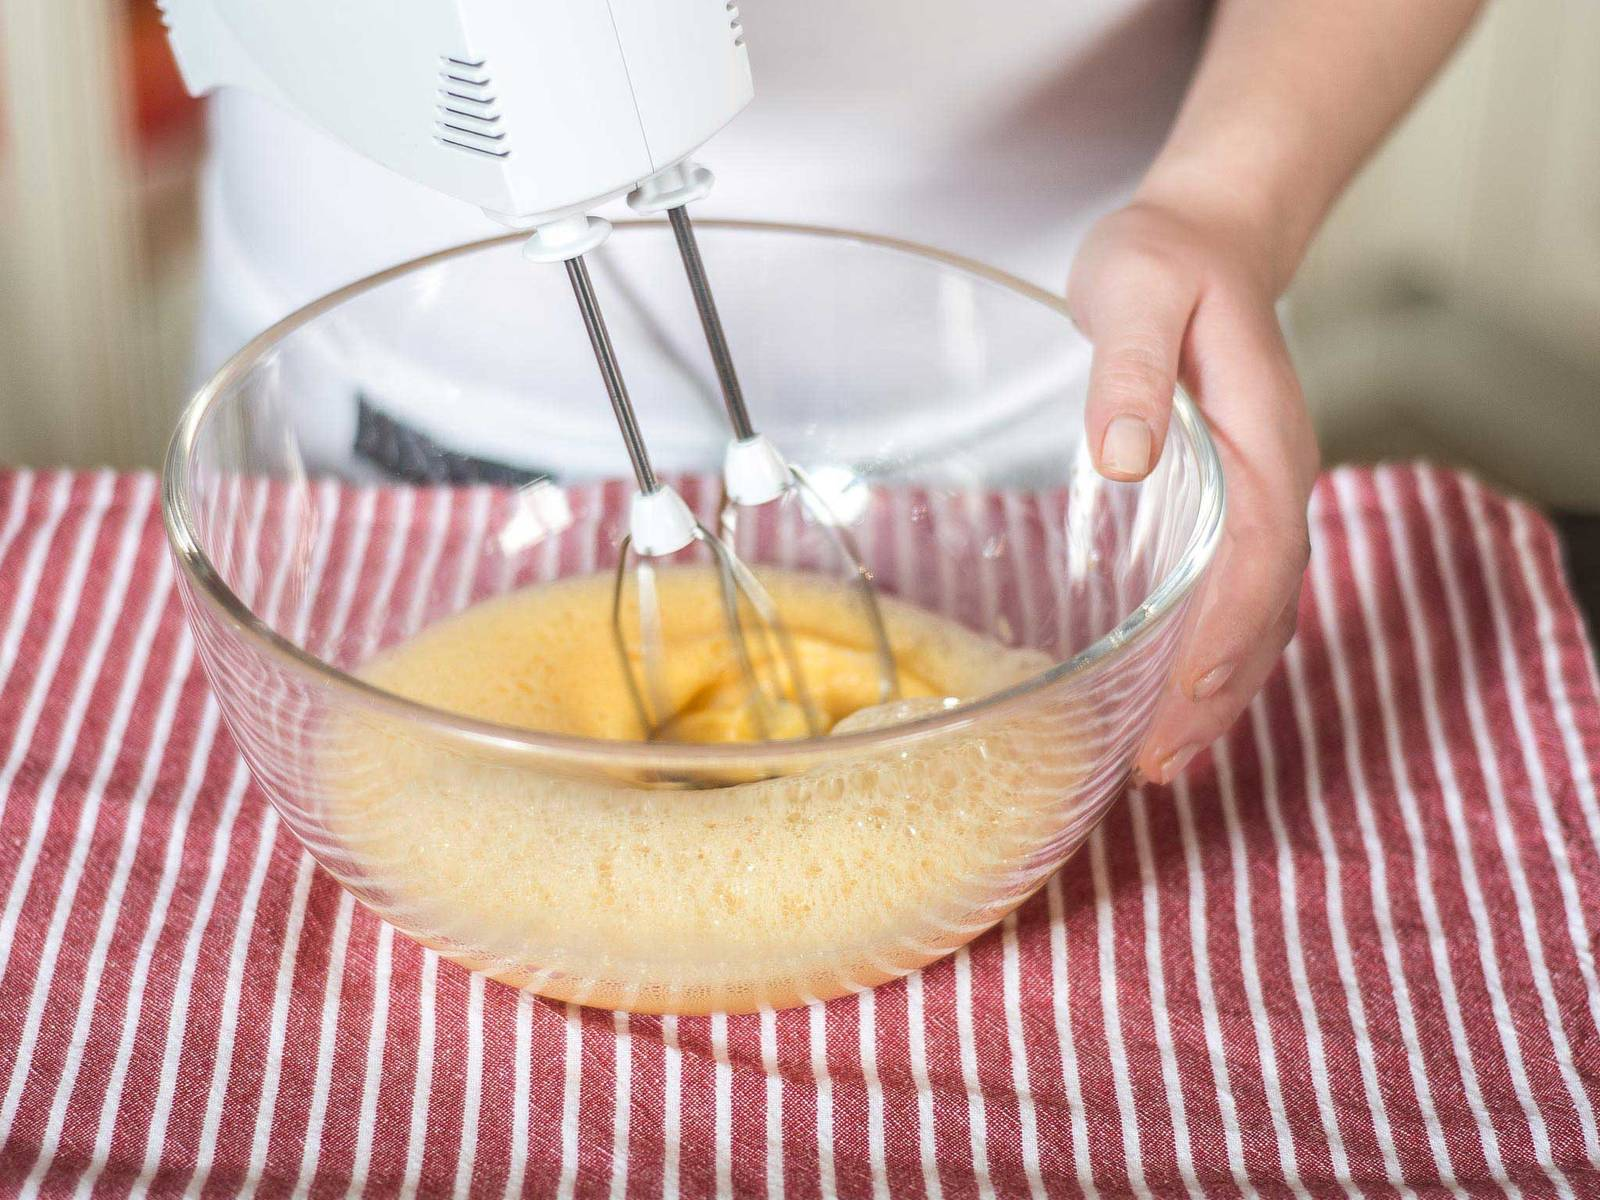 Beat eggs and egg yolks with hand mixer until fluffy.